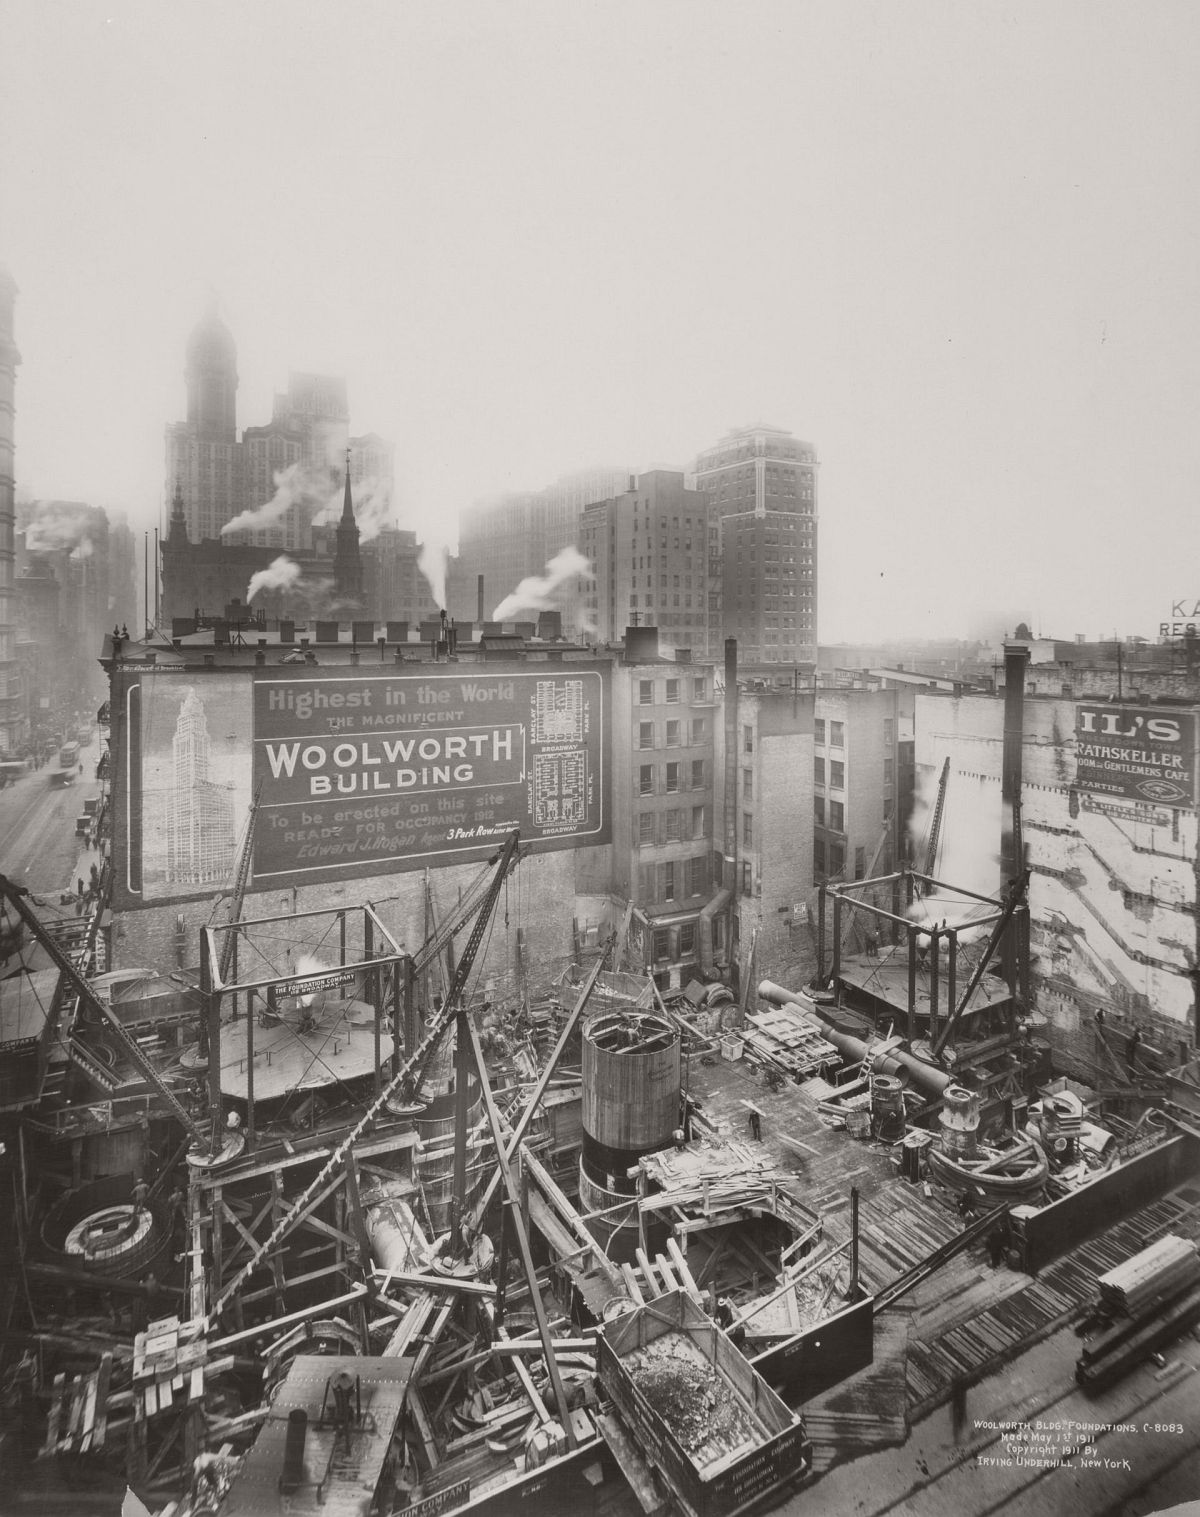 Construction of the Woolworth Building at 233 Broadway in 1911. Photograph: New York Public Library